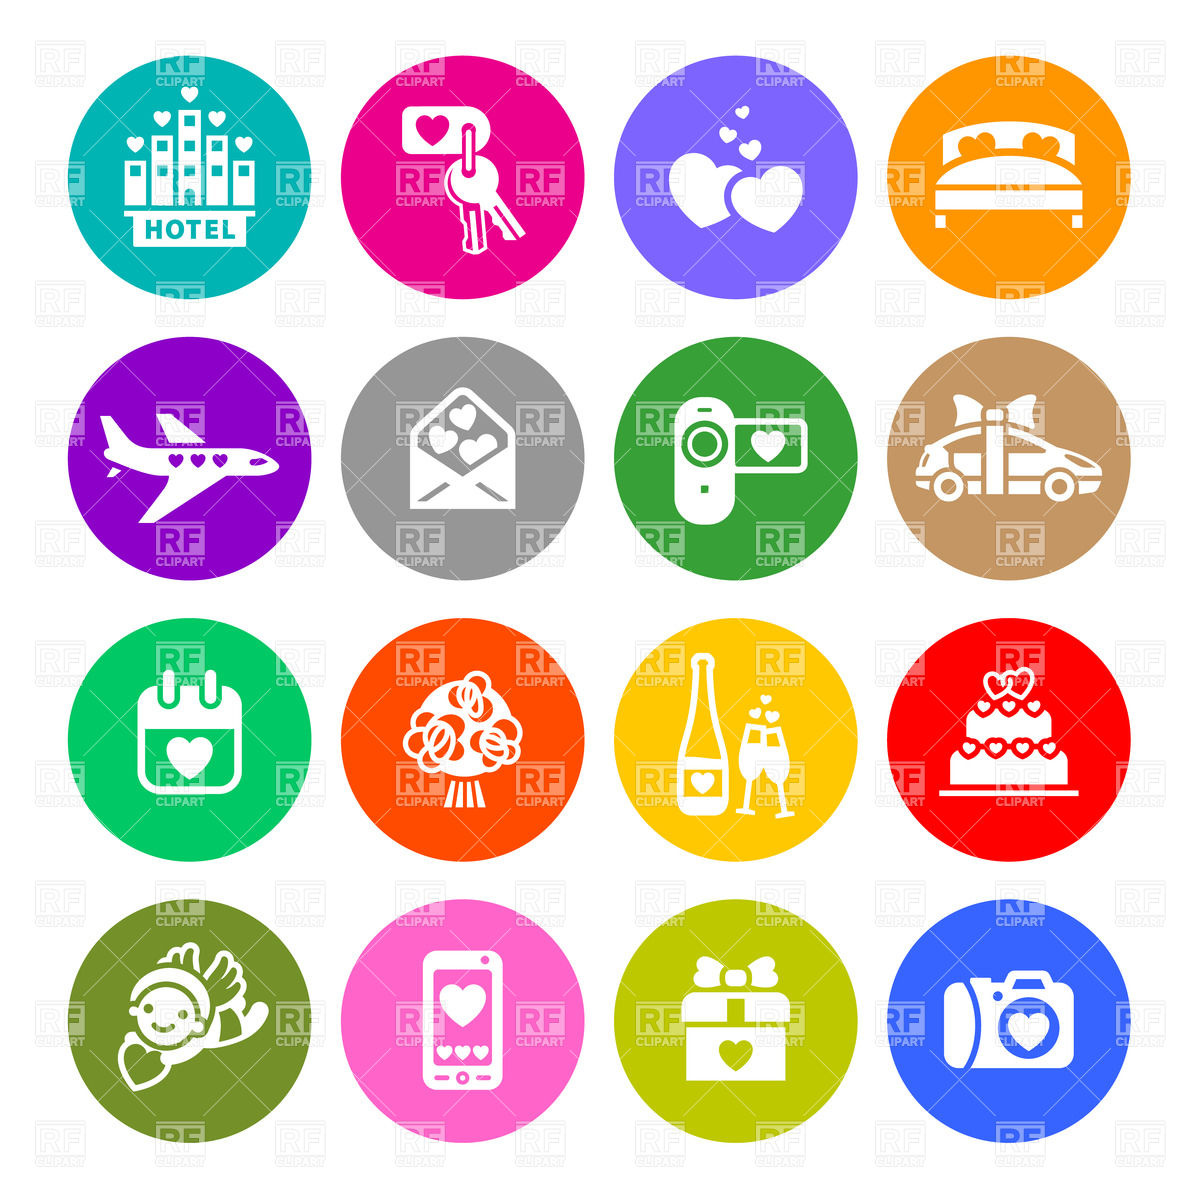 Travel Clipart Free Download-travel clipart free download-13